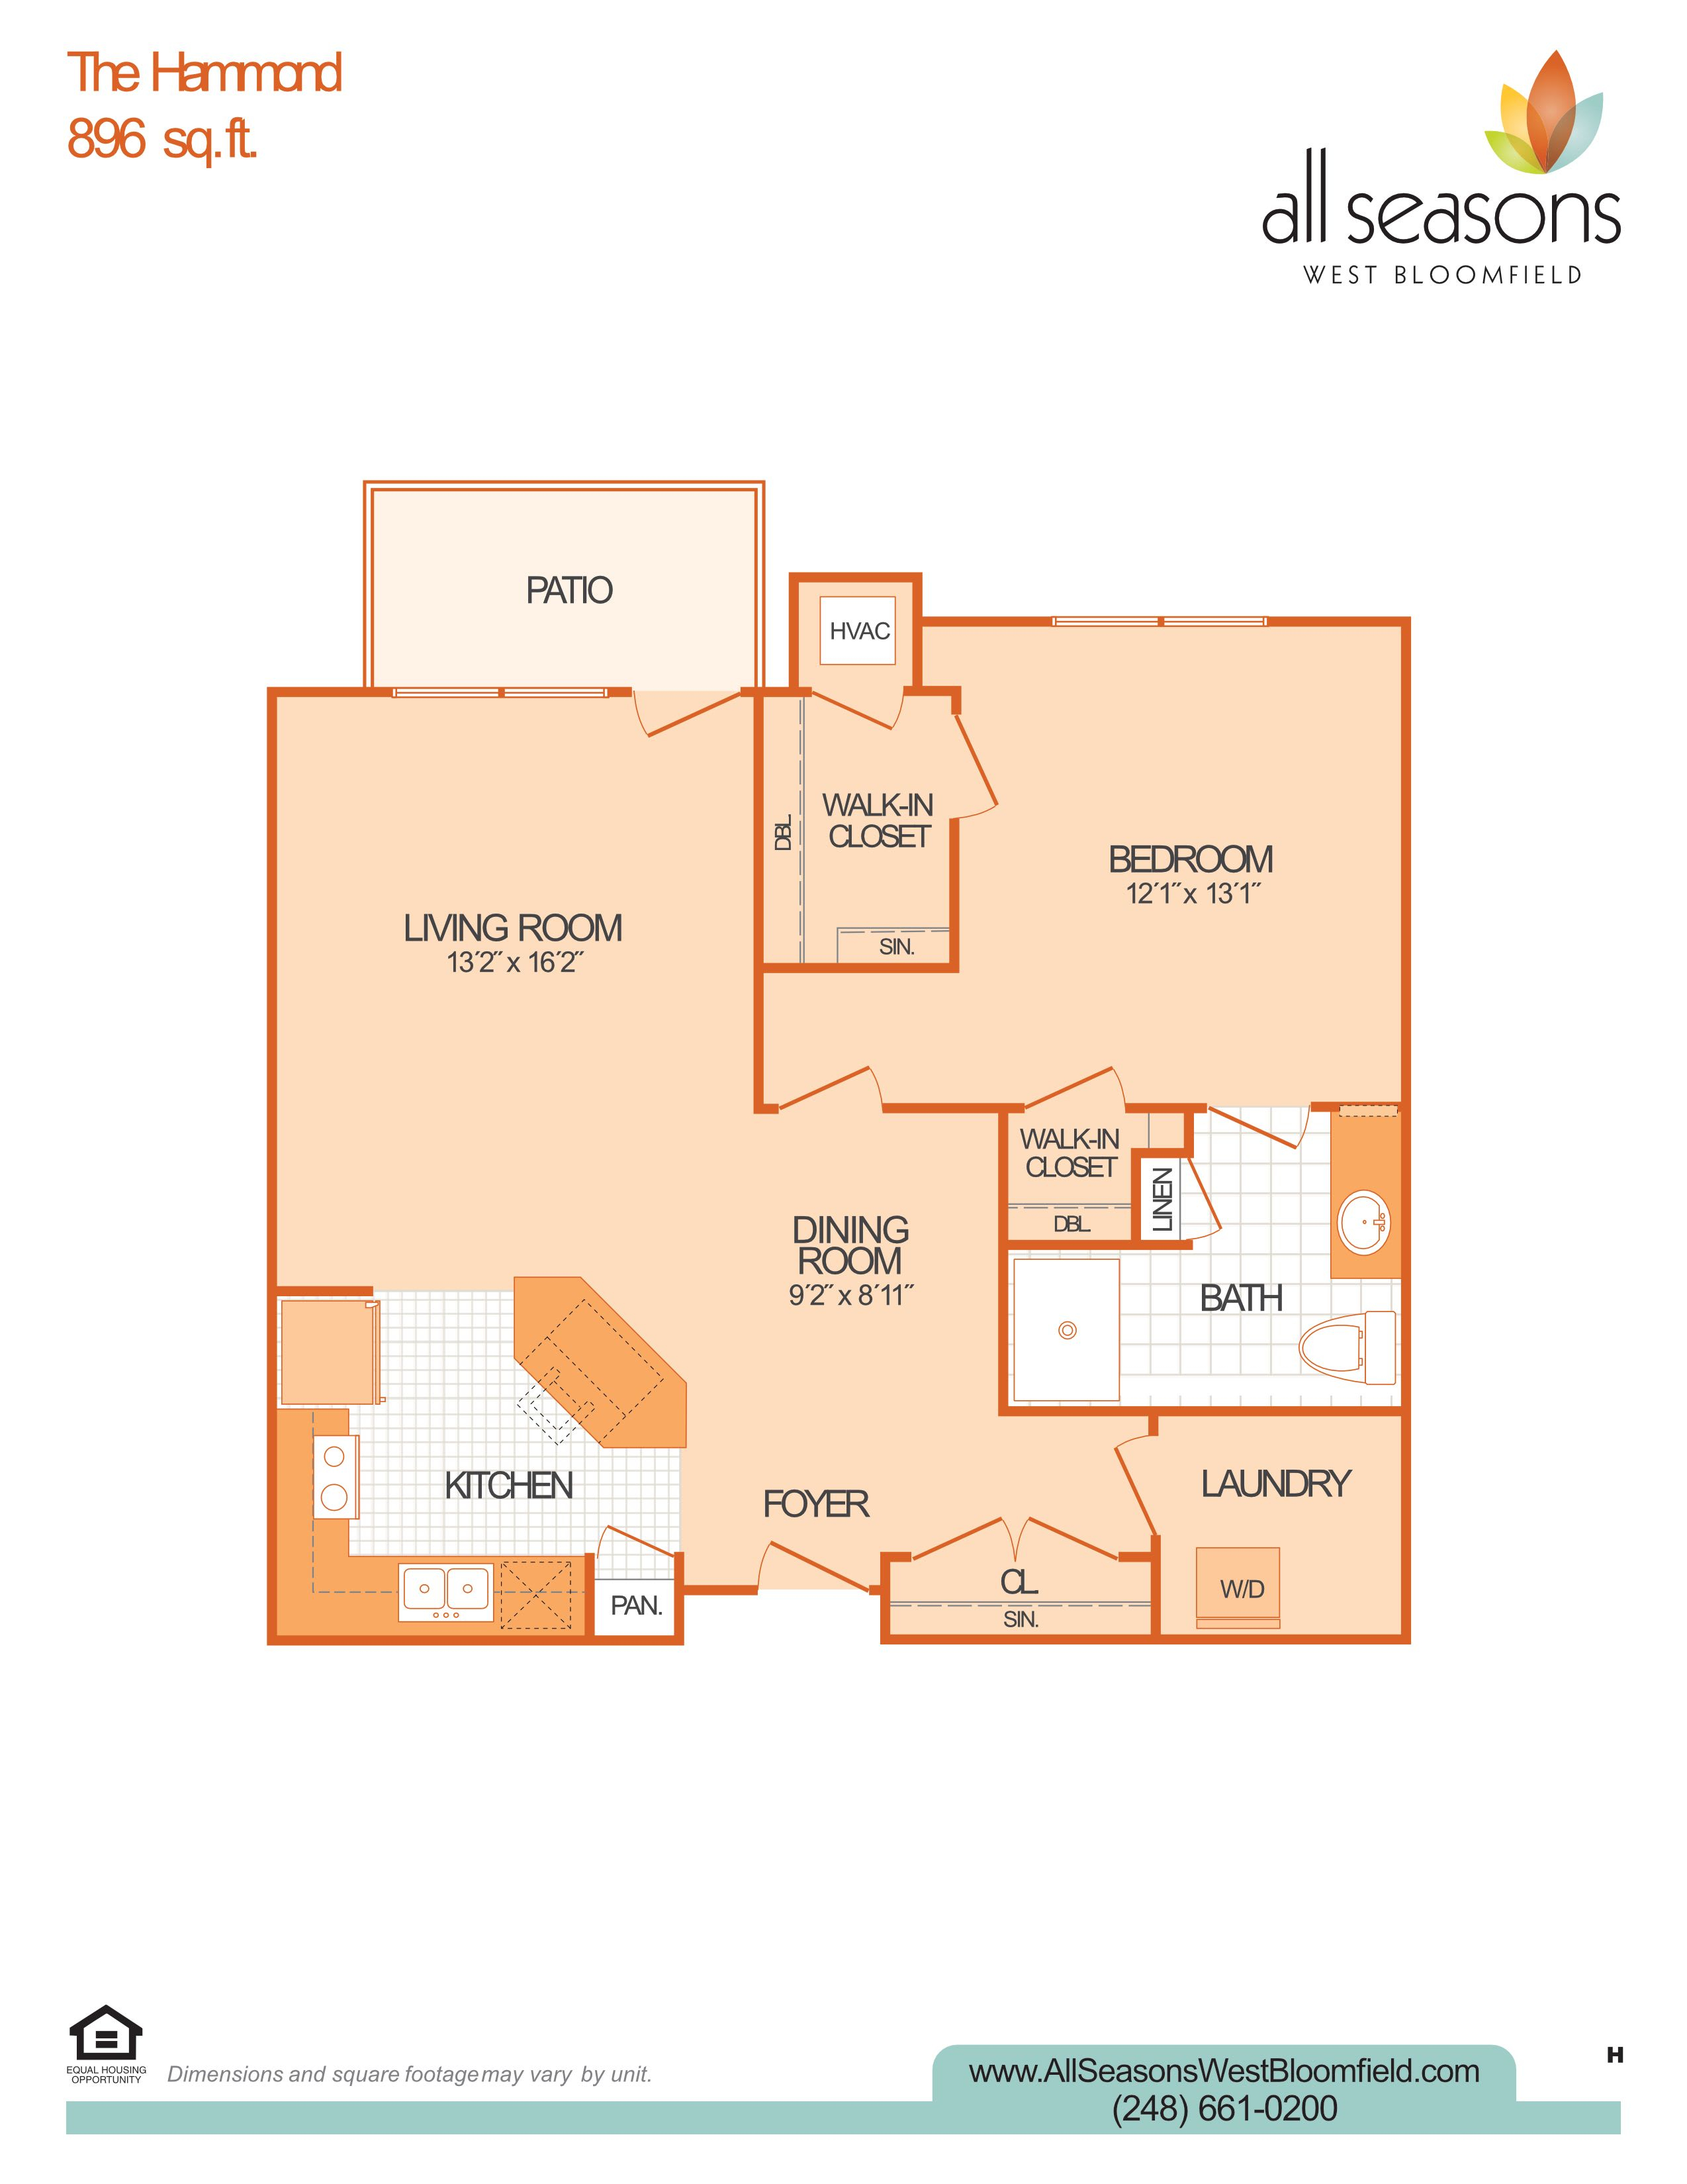 The Hammond floor plan at All Seasons West Bloomfield in West Bloomfield, Michigan